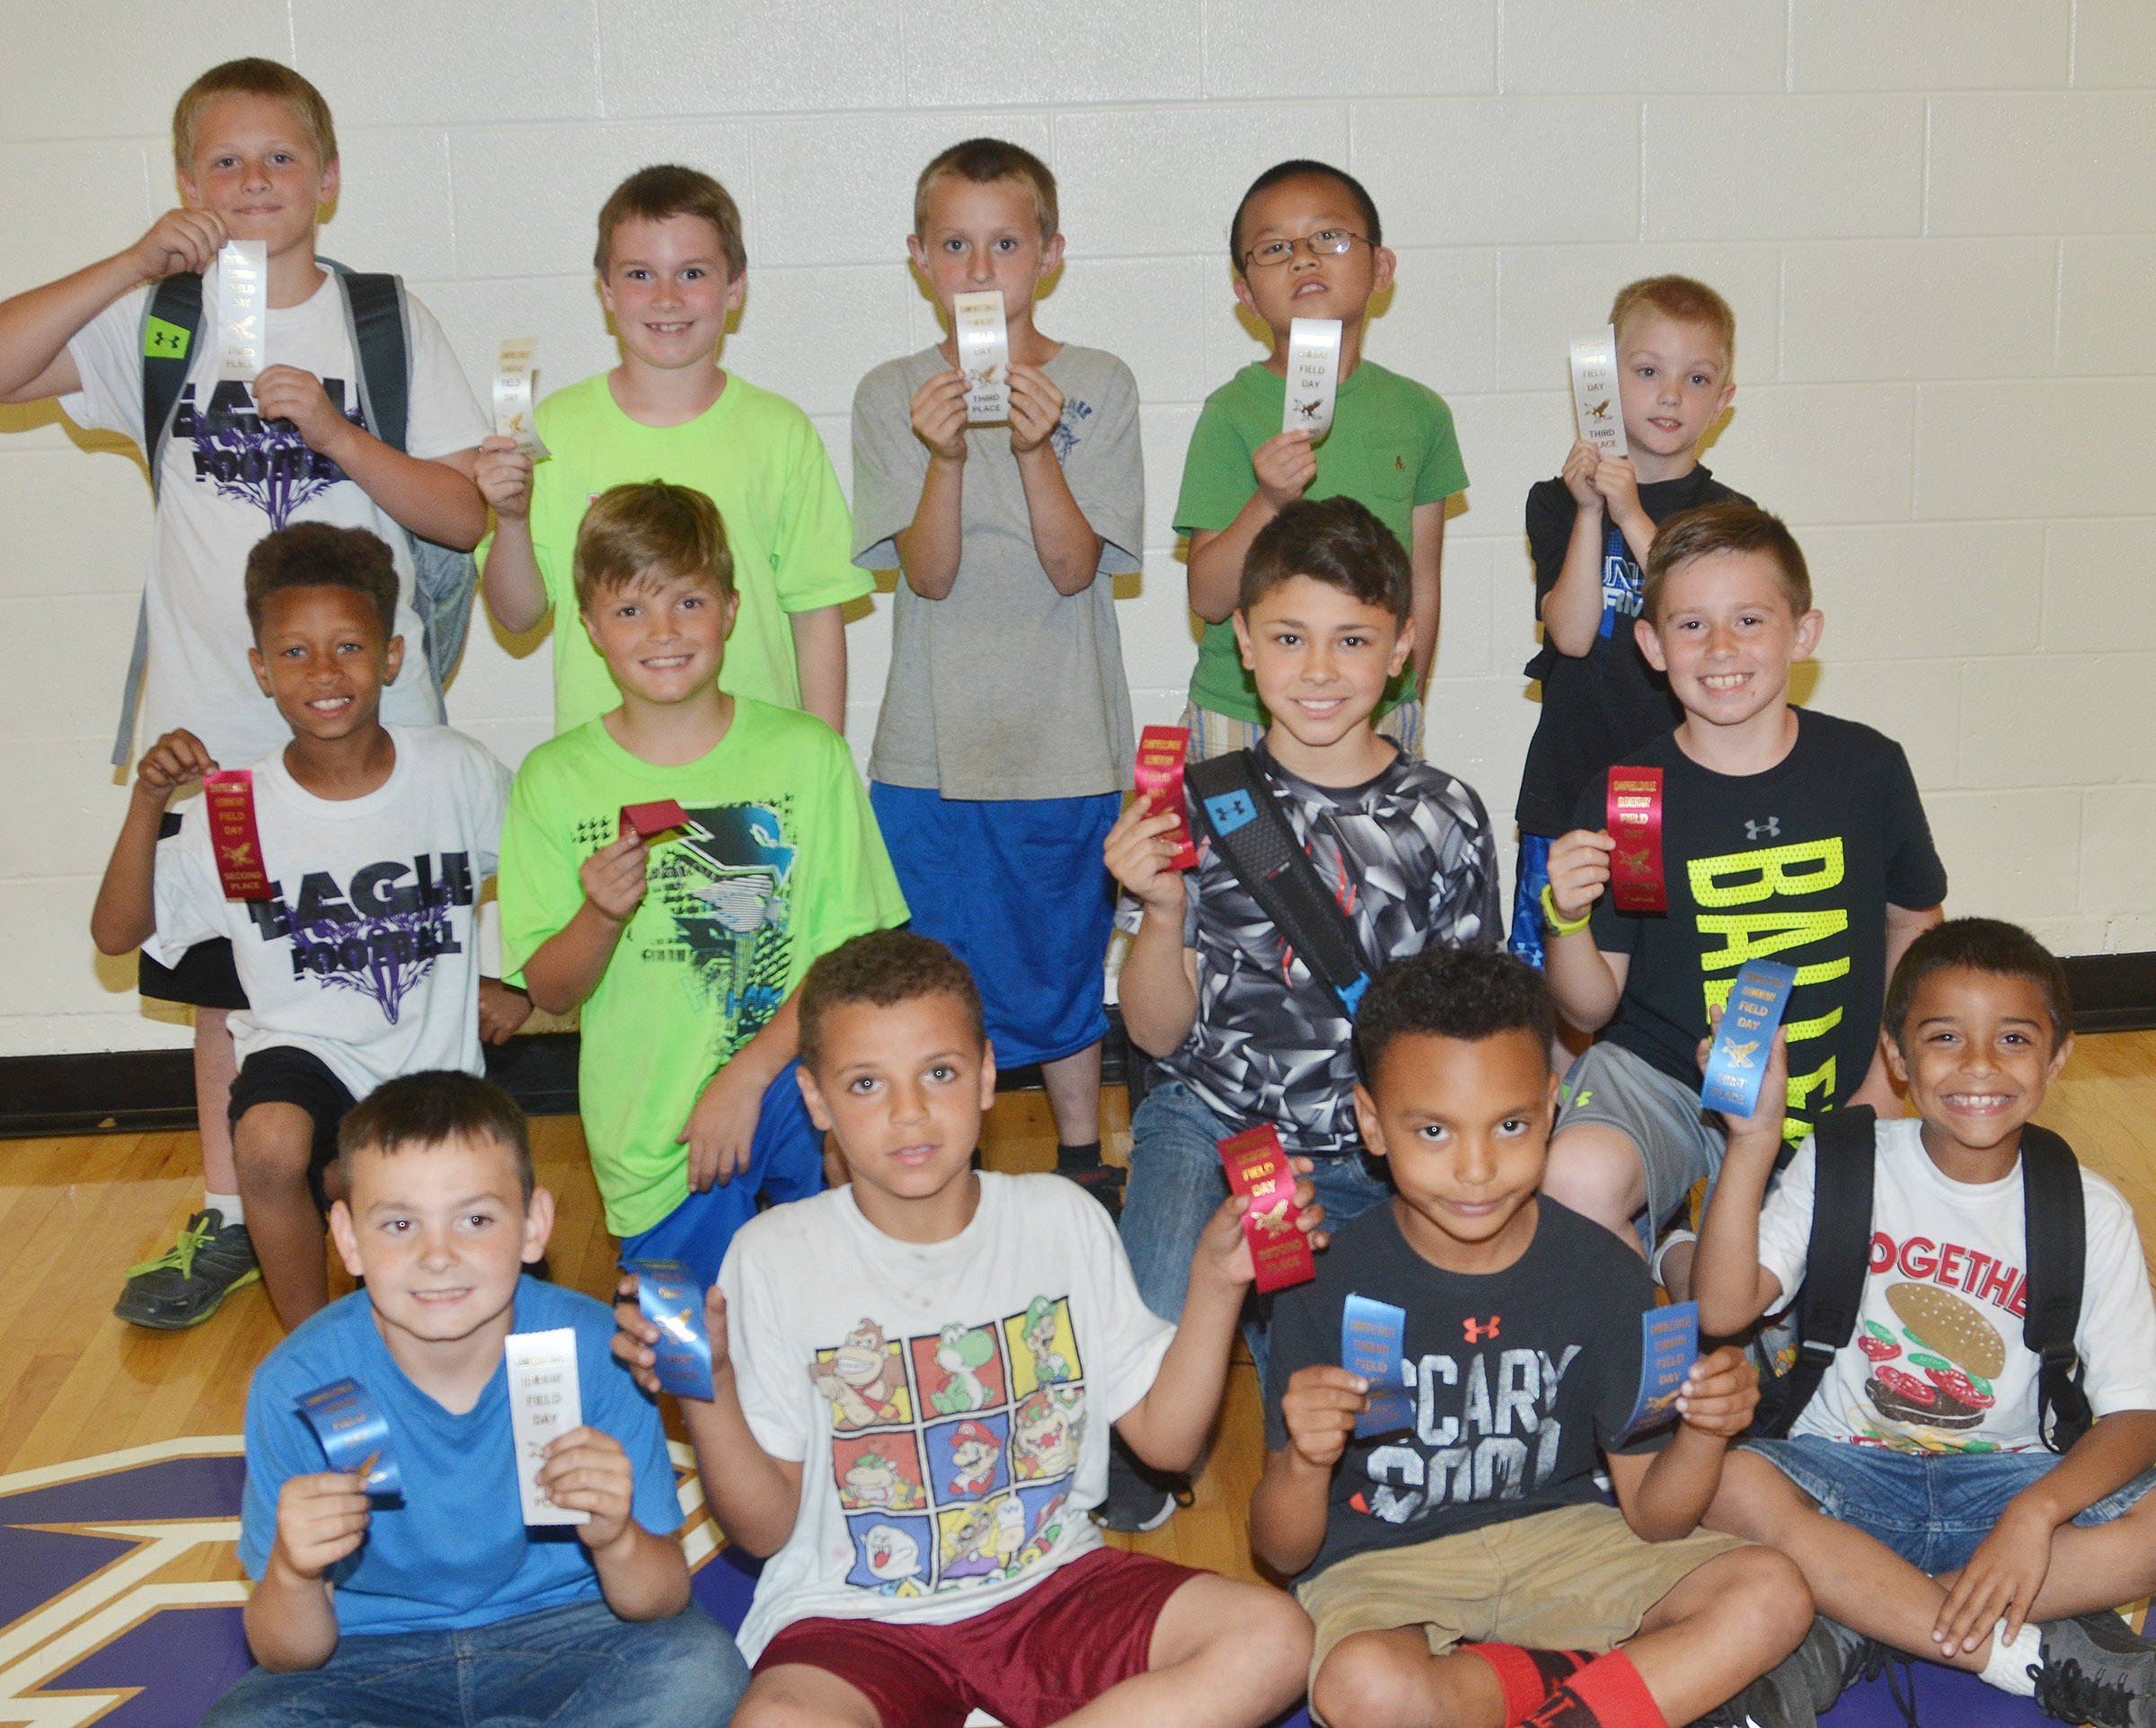 CES second-grade boys who were classroom winners in the 50-yard dash are, from left, Hunter Garmon, Zayden McKenzie, Maddox Hawkins and Keylan Strong, first place winners. Second row, Rajon Taylor, Emerson Gowin, Braygon Noegel and Lanigan Price, second place winners. Back, Evan Lockridge, Stephen Green, Zachary Cox, Alex Yang and Evan Cundiff, third place winners. Overall, Maddox Hawkins was first, Zayden McKenzie was second and Hunter Garmon was third.